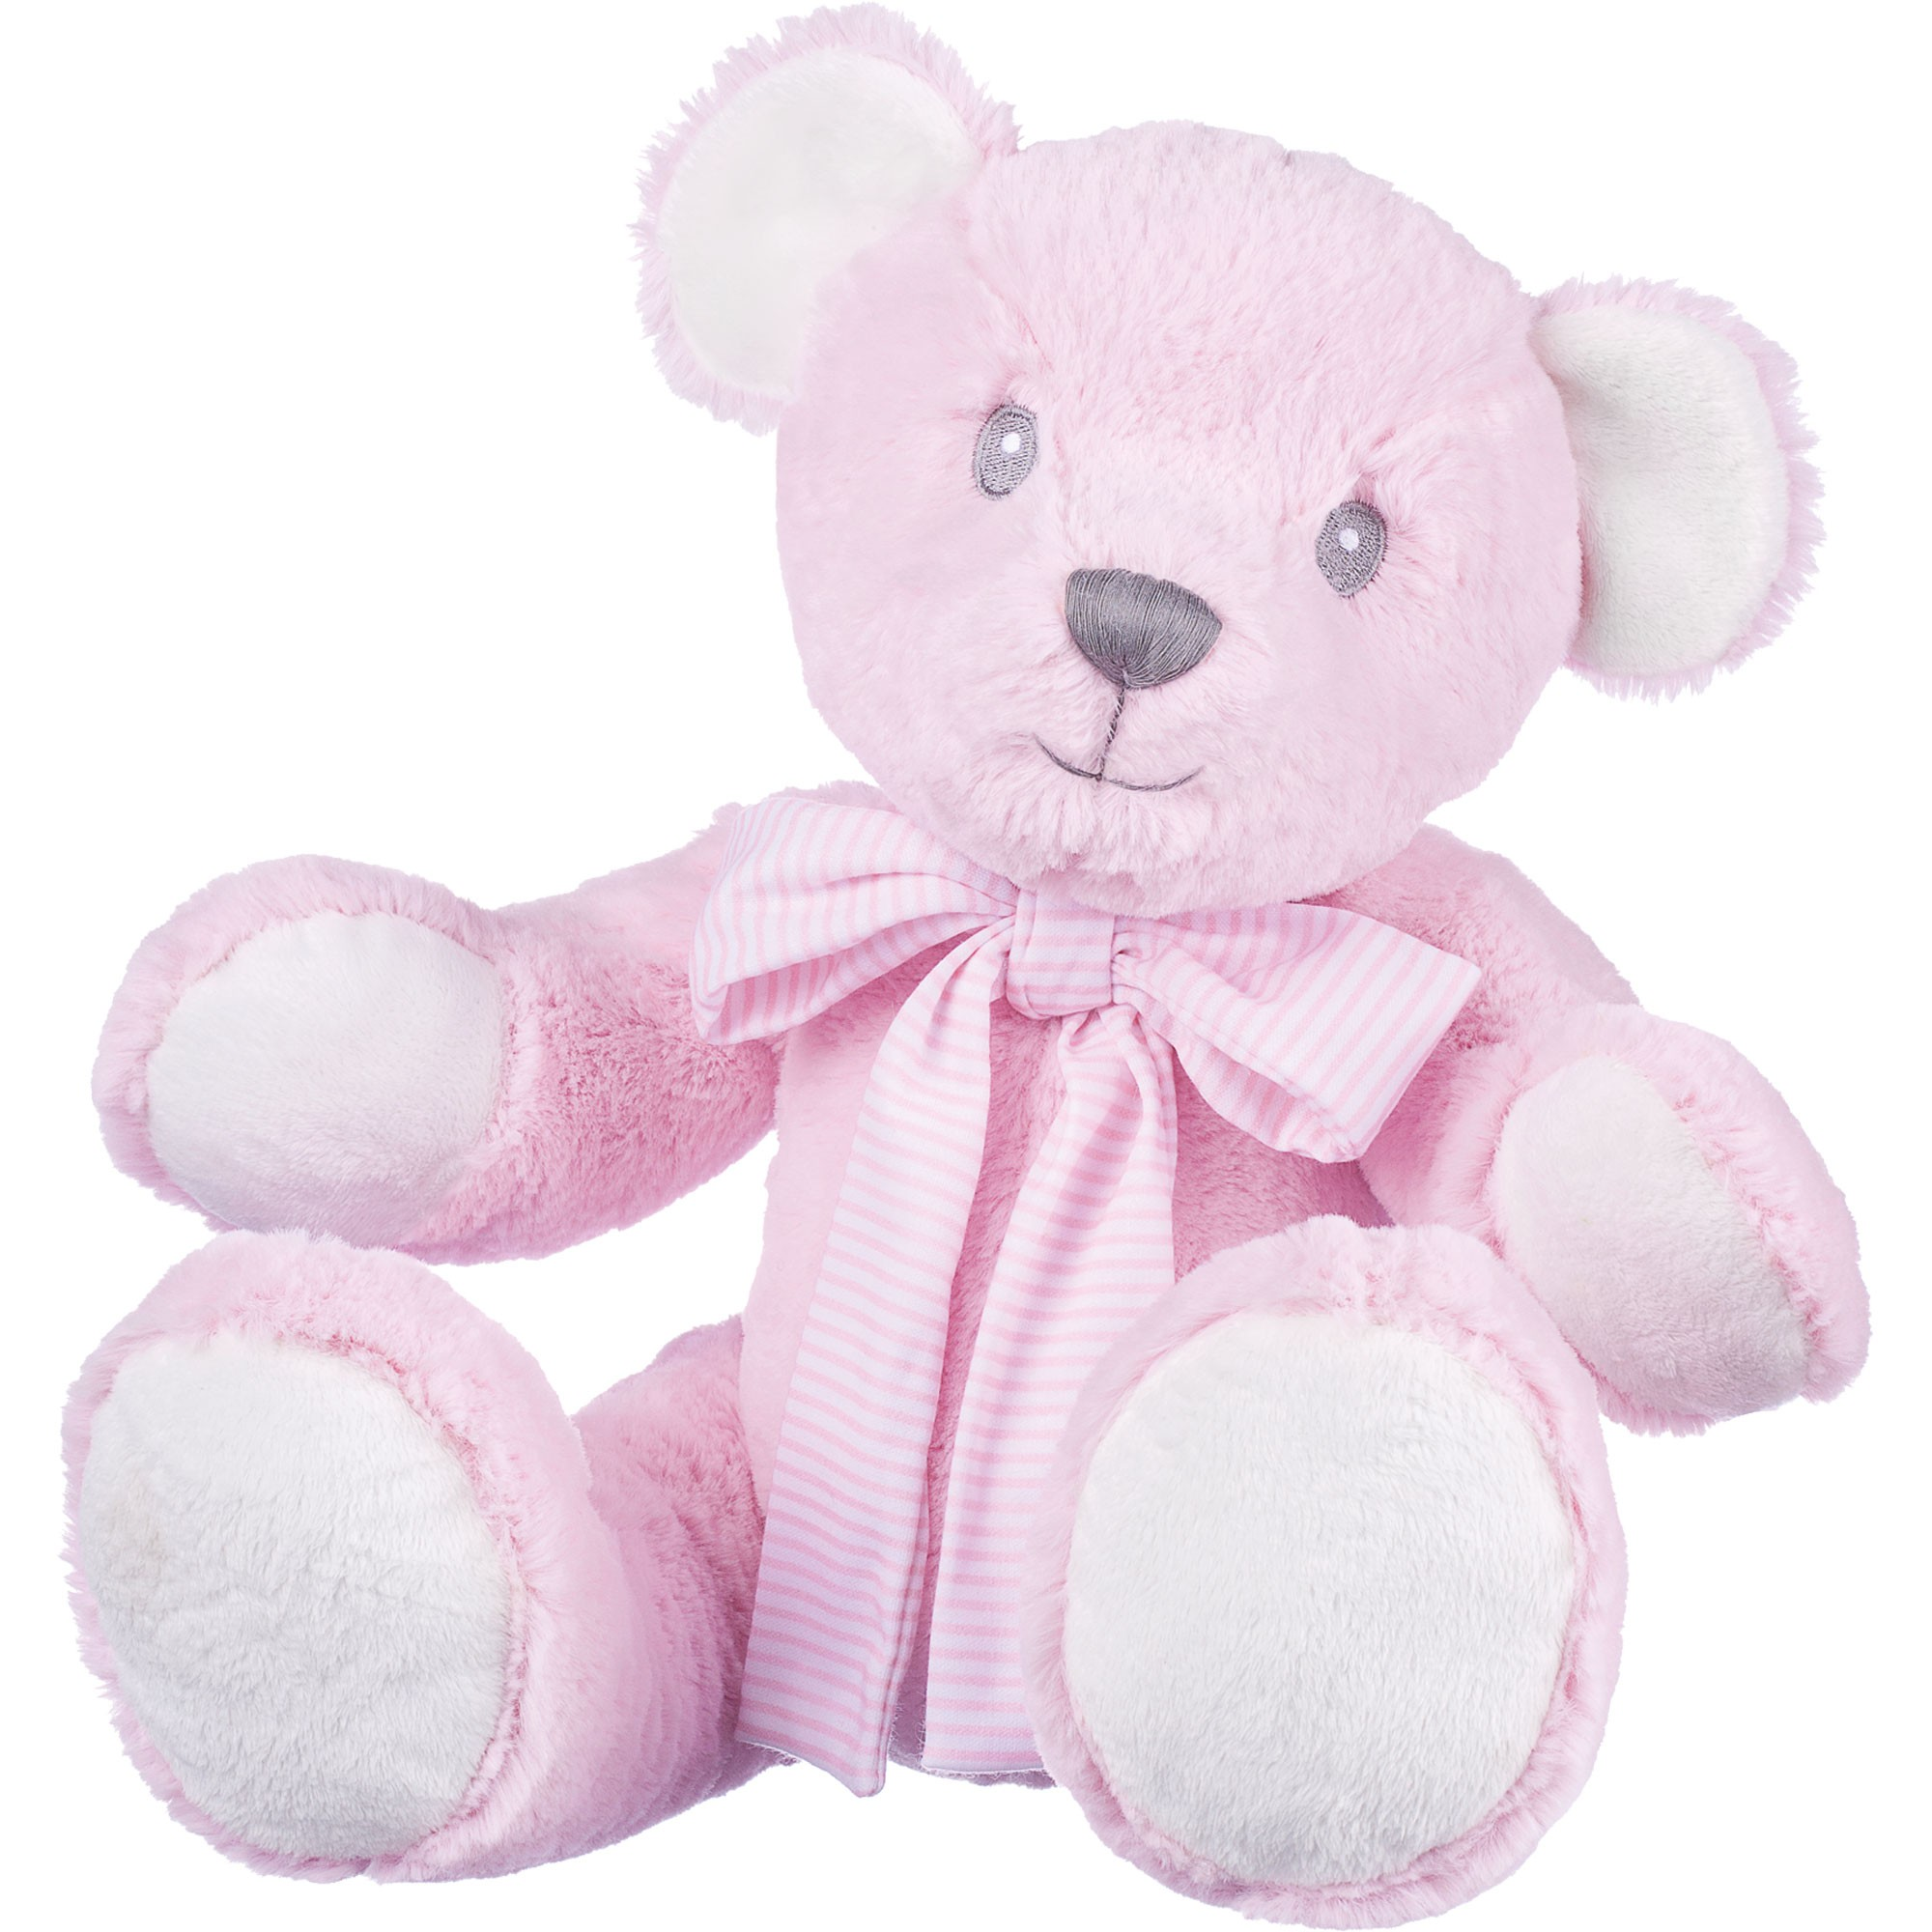 Hug-a-Boo Pink Large Teddy Bear